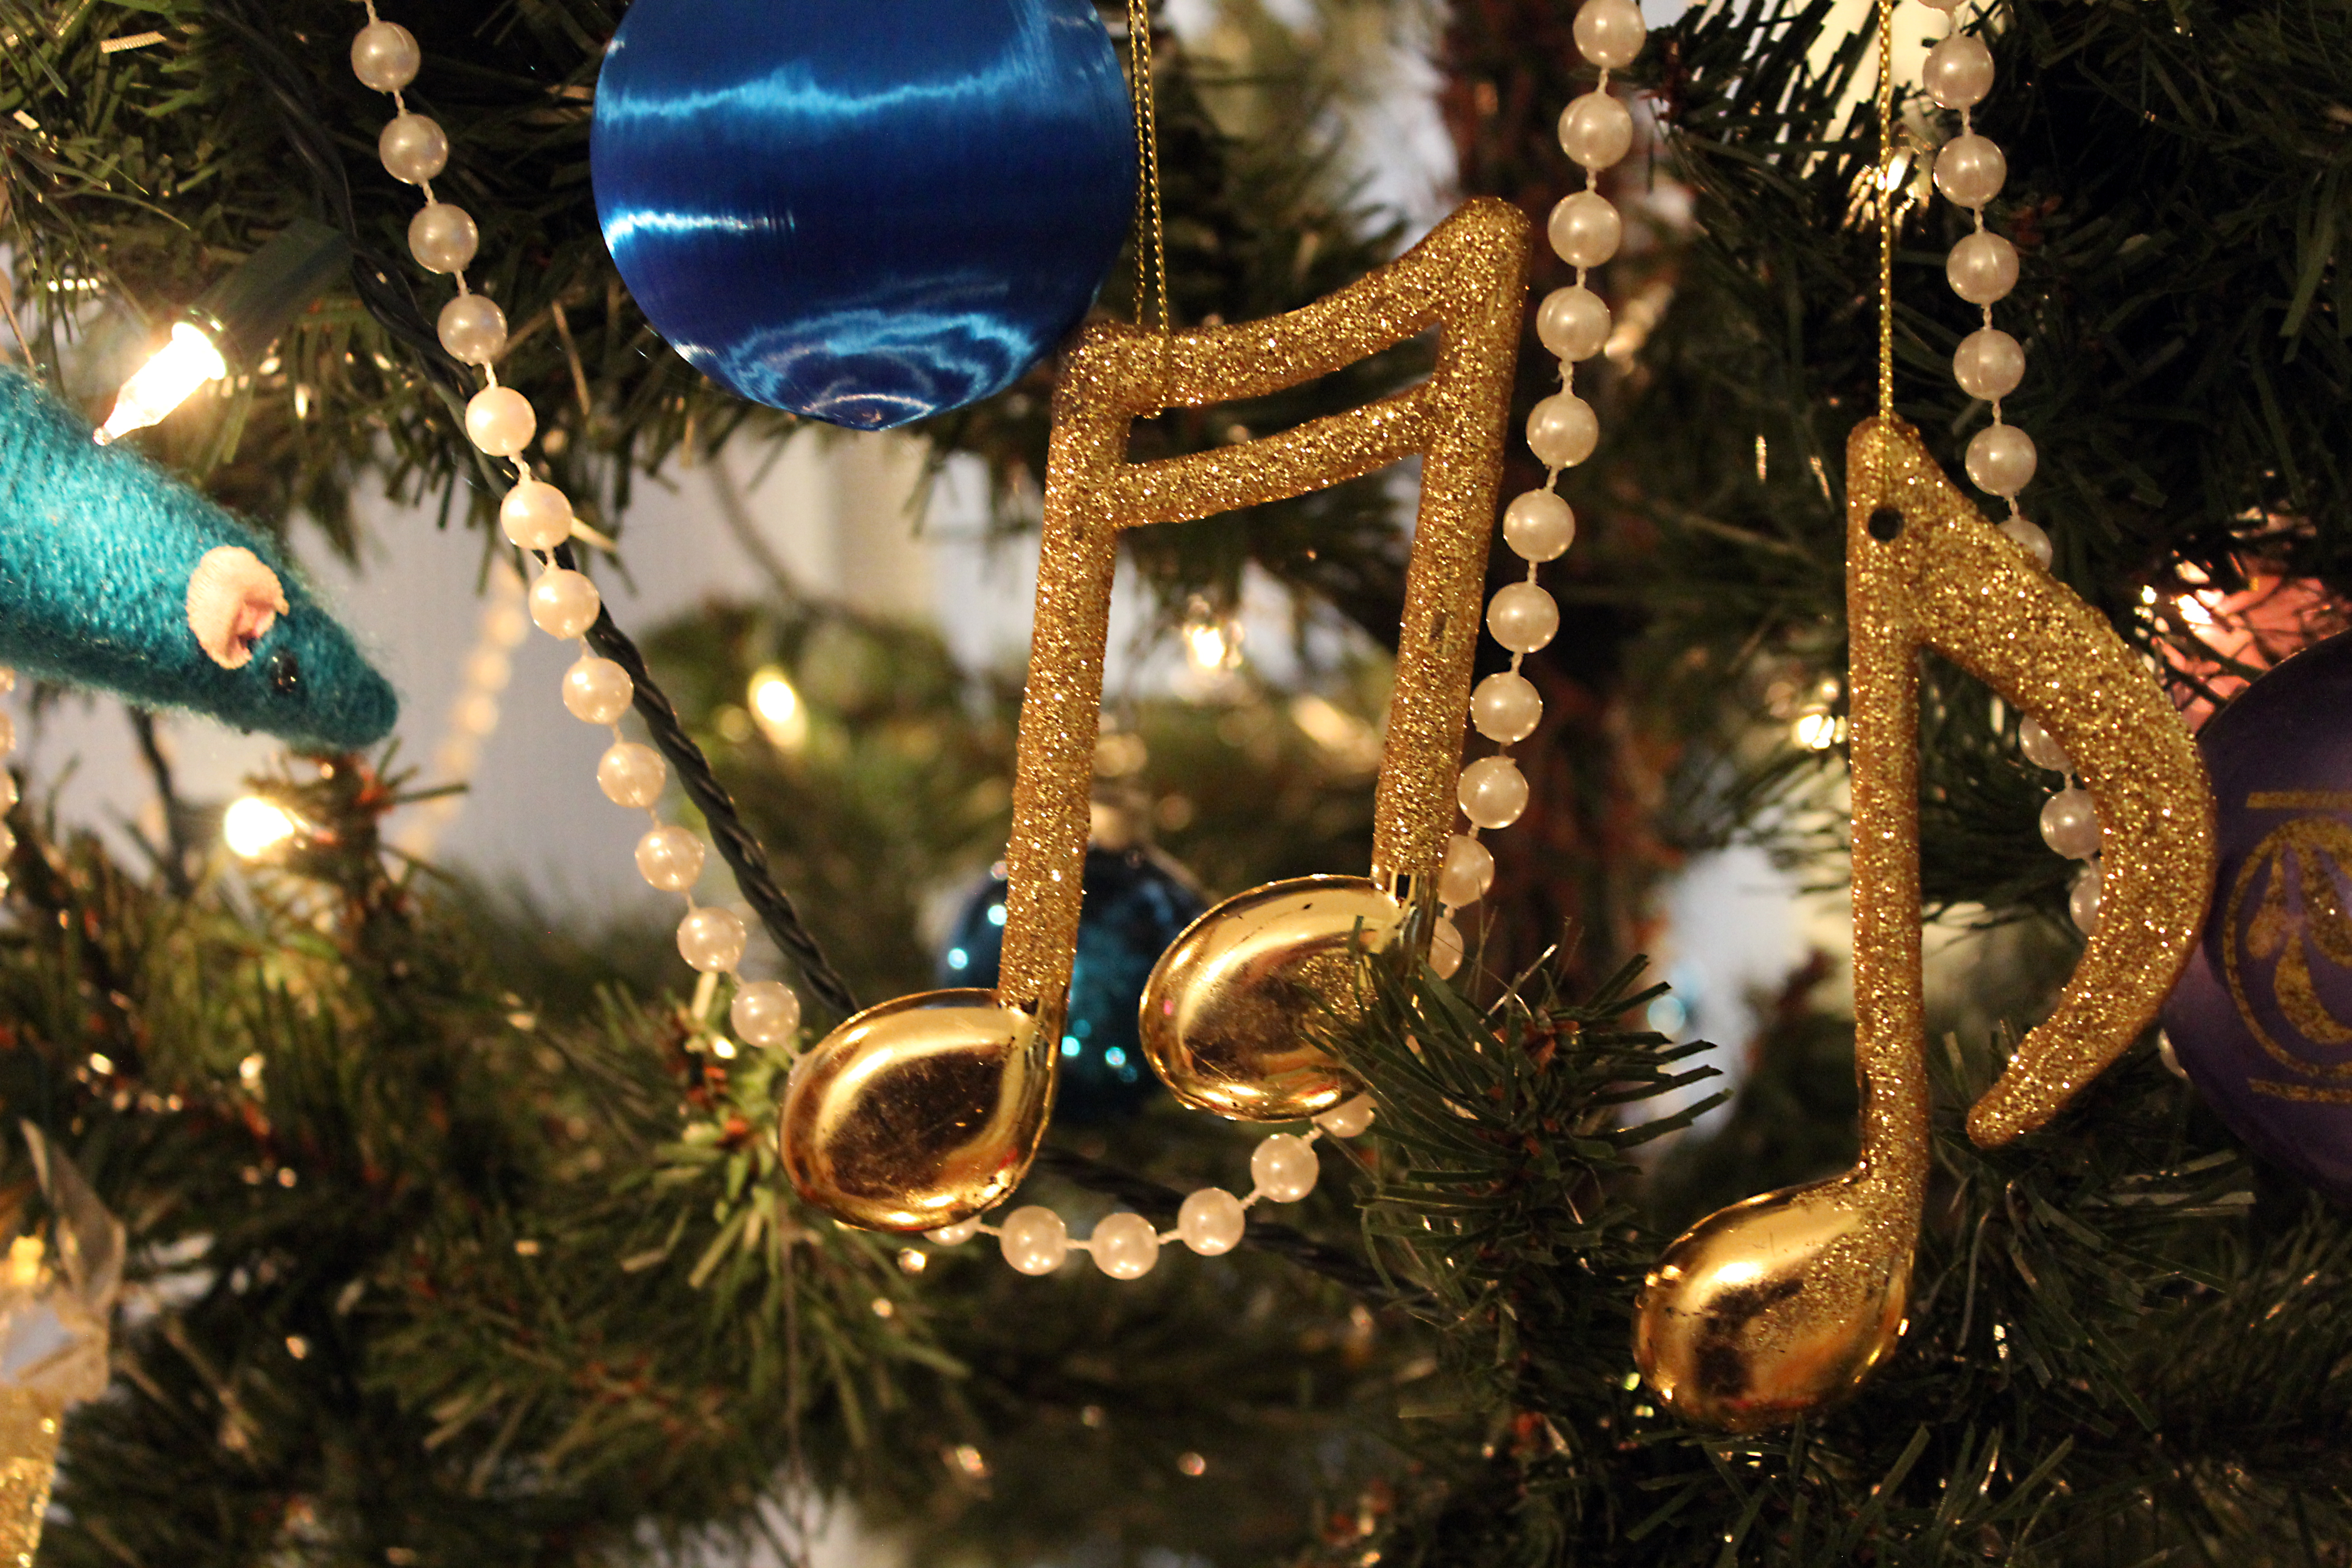 Cleveland Christmas Music Station 2020 Ohio radio station changing tunes, will now play Christmas music